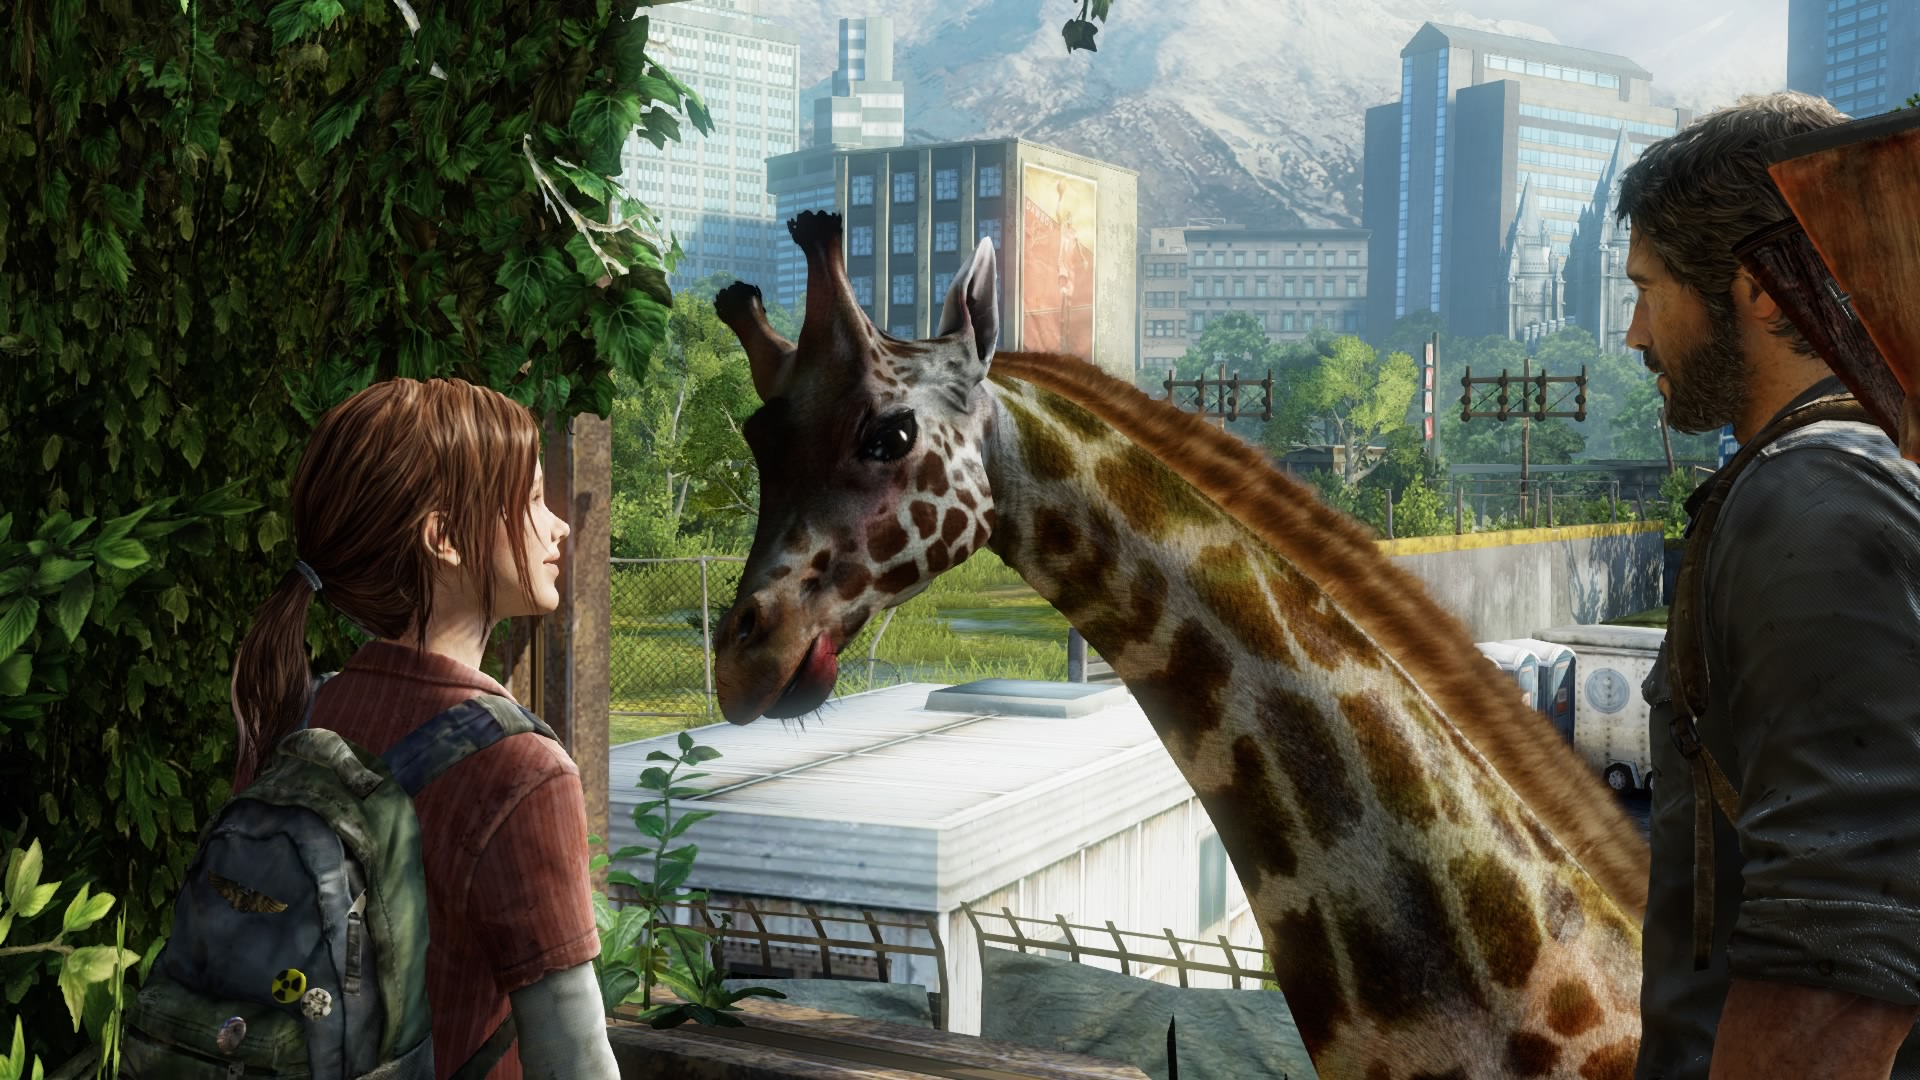 Giraffes the last of us wiki fandom powered by wikia biocorpaavc Images